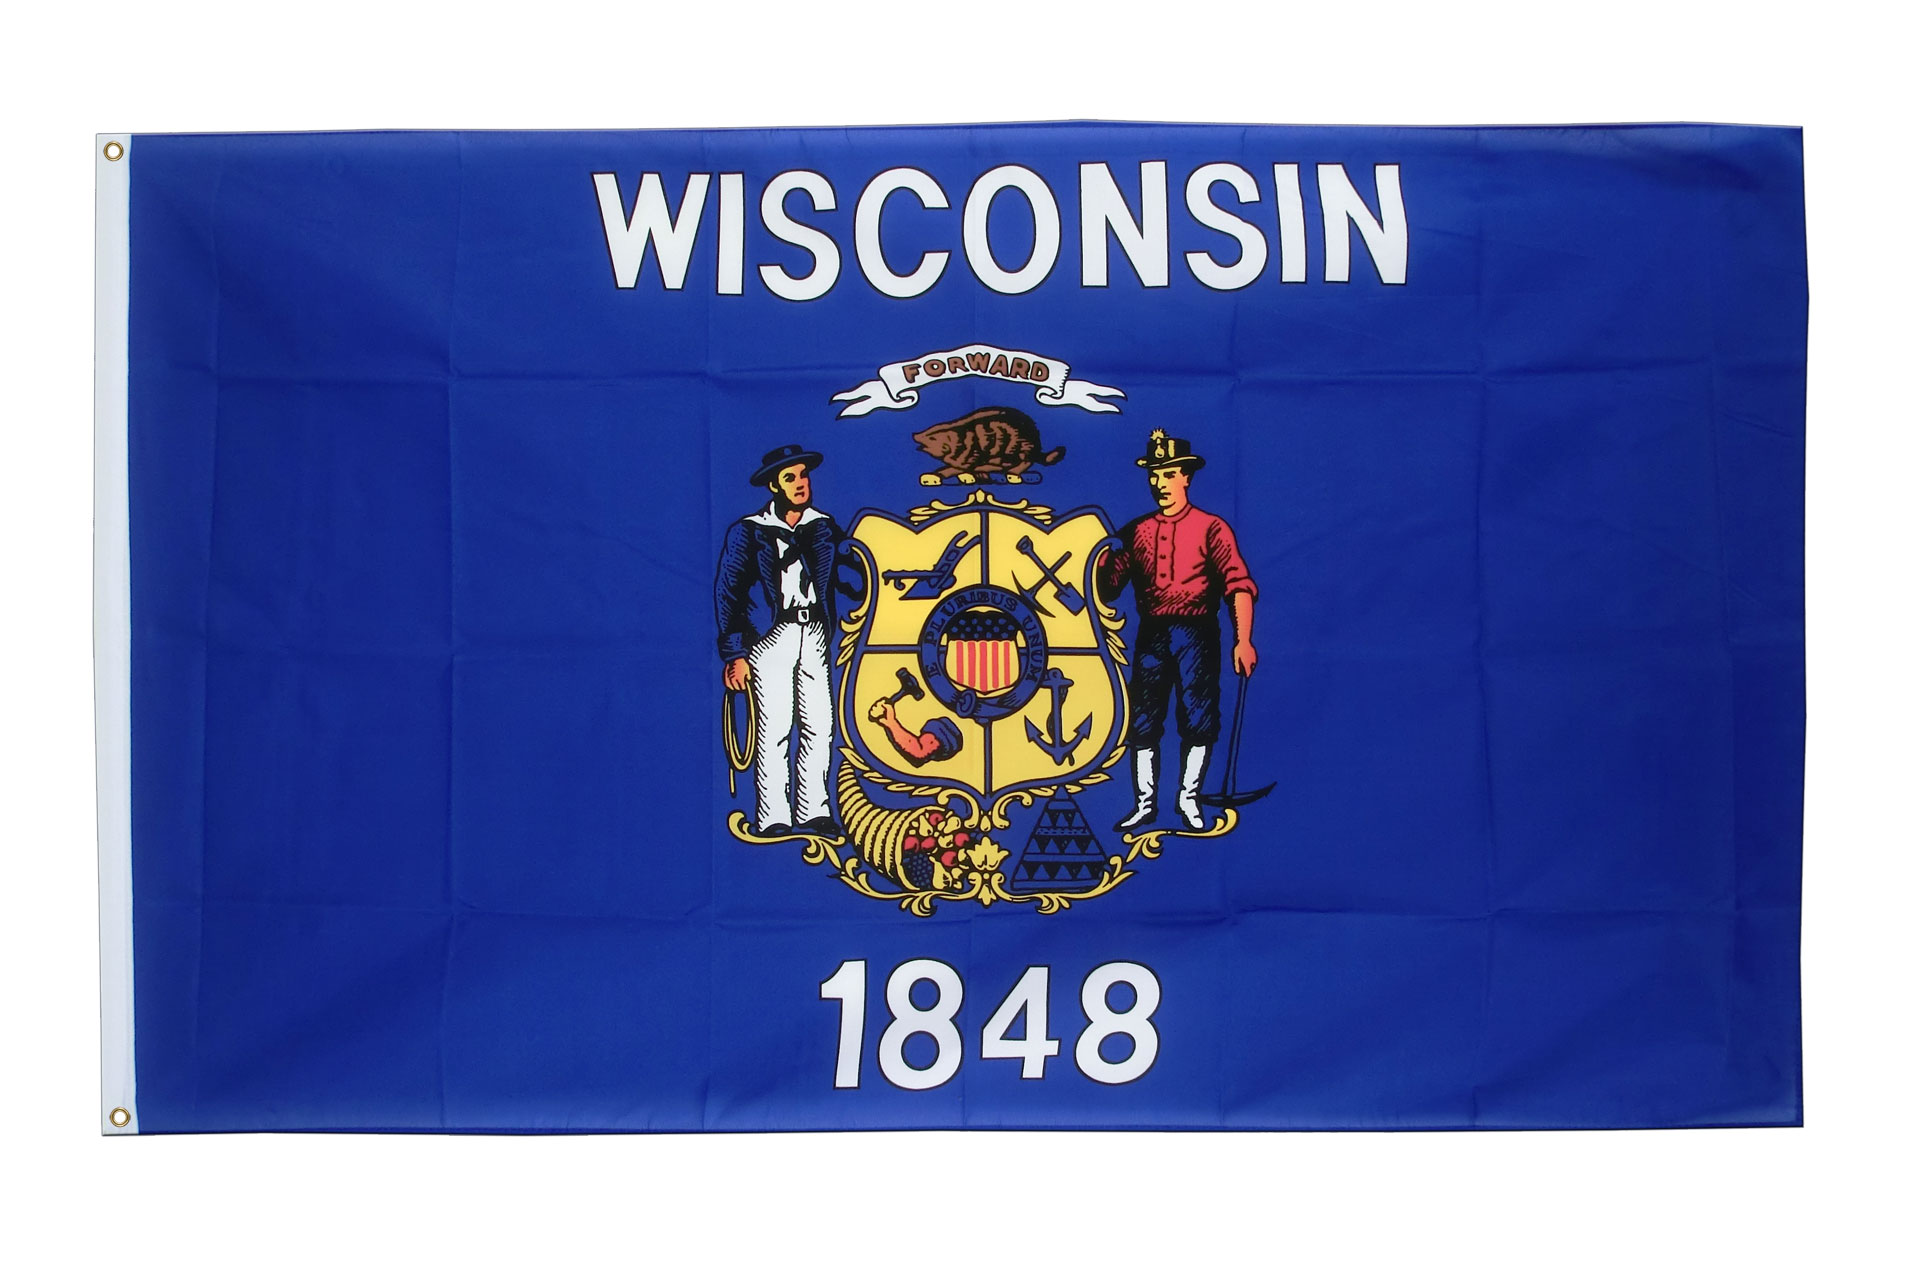 Buy Wisconsin Flag - 3x5 ft (90x150 cm) - Royal-Flags: royal-flags.co.uk/wisconsin-flag-2175.html